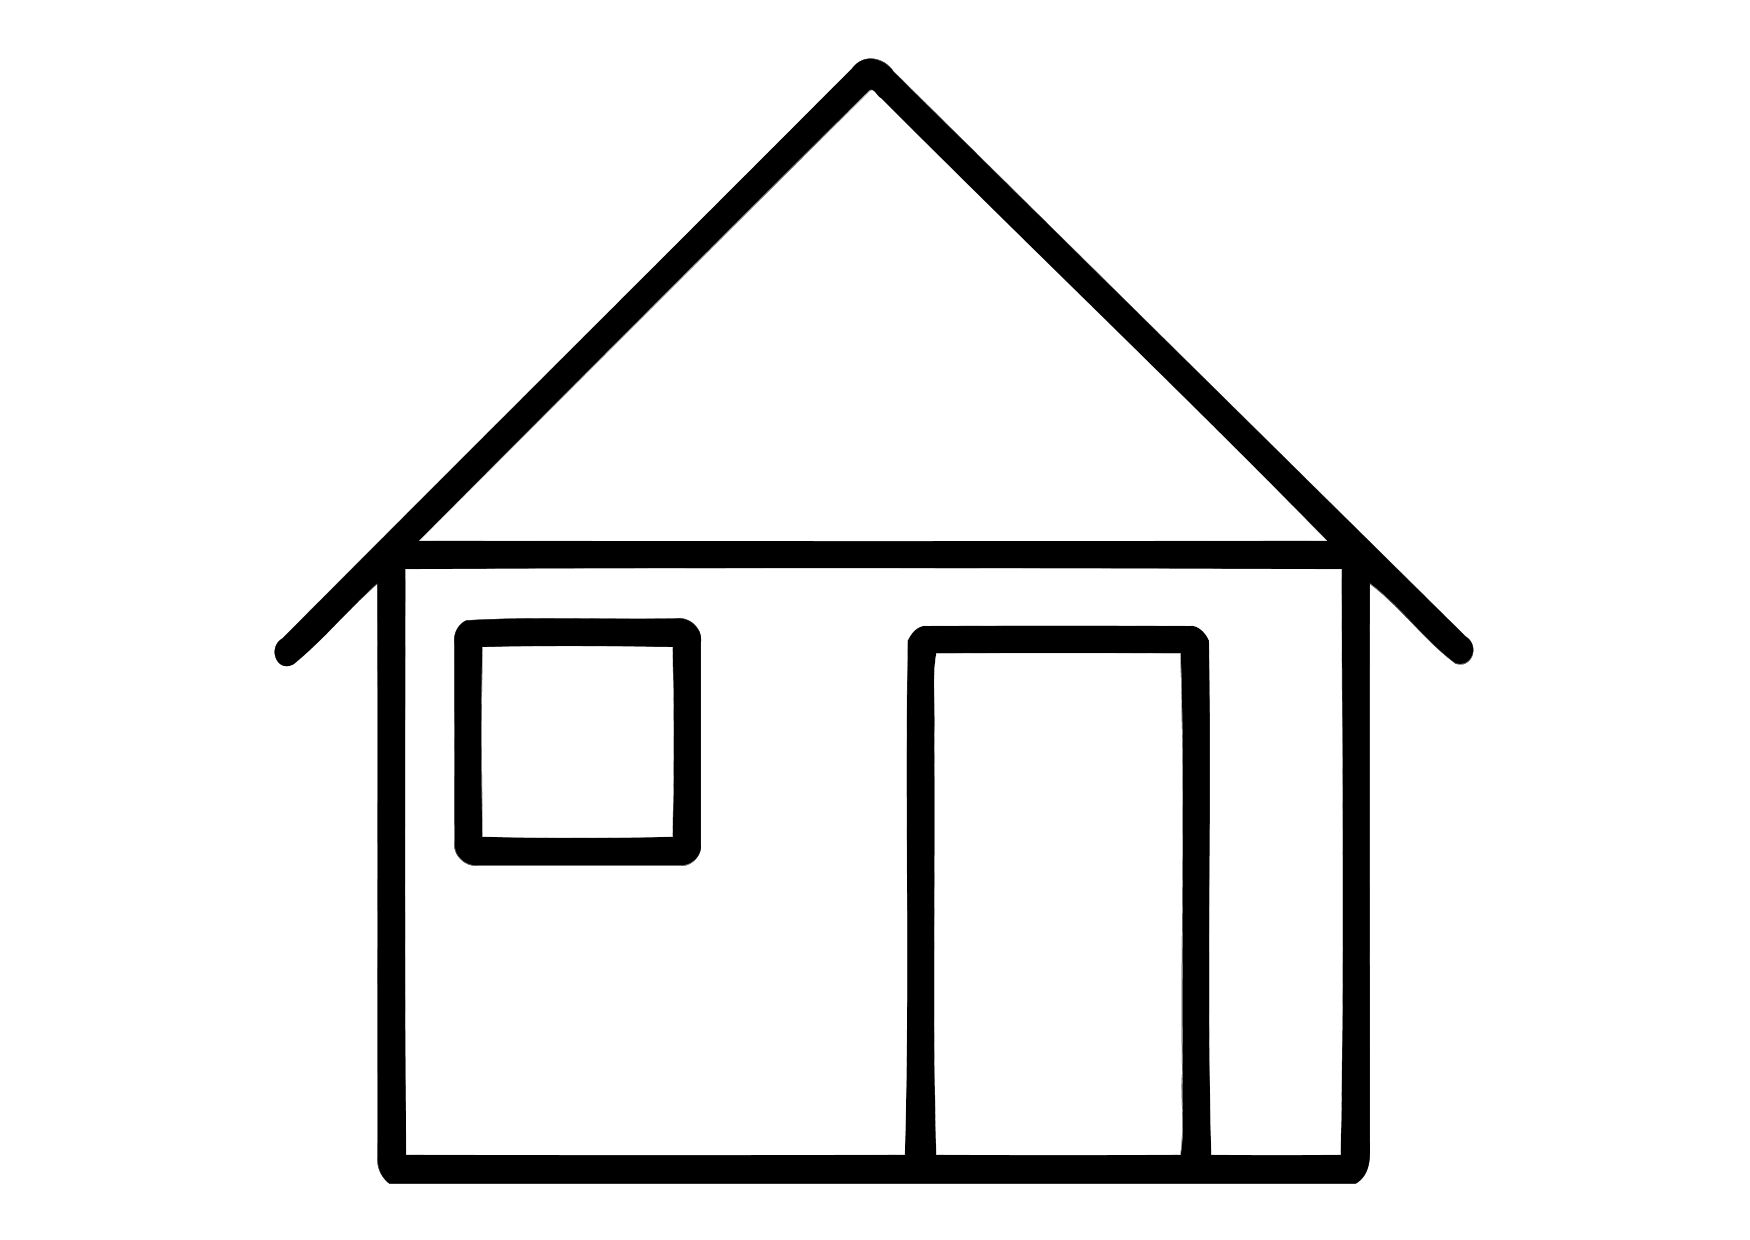 coloring worksheets house people and jobs coloring pages for kids houses colouring house coloring worksheets